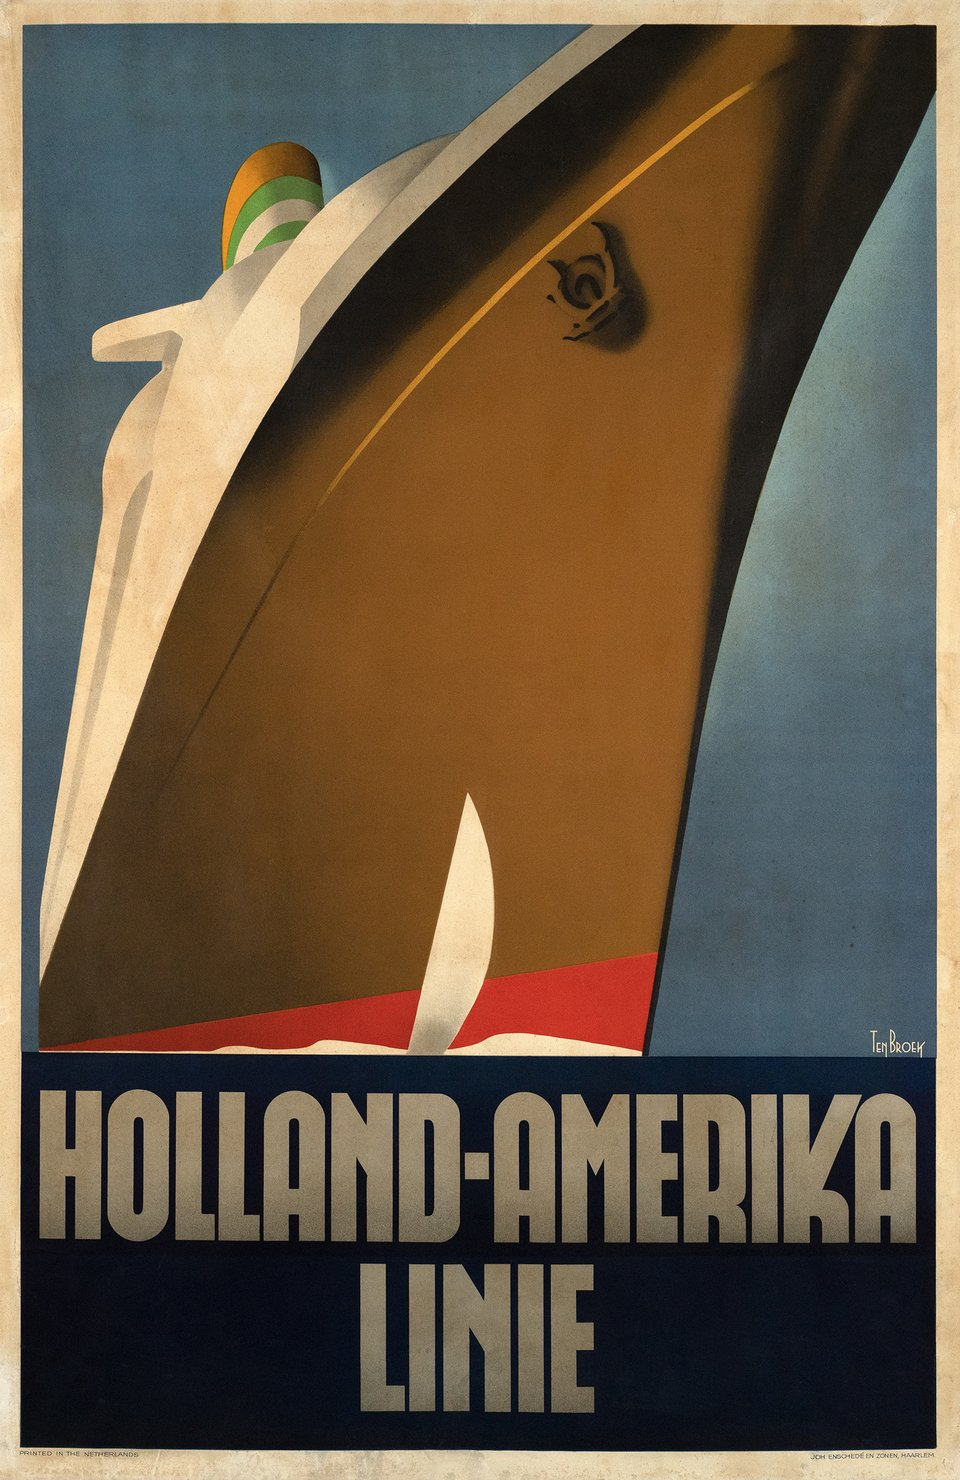 Holland America Line – Affiche ancienne – Willem F. Ten BROEK – 1936